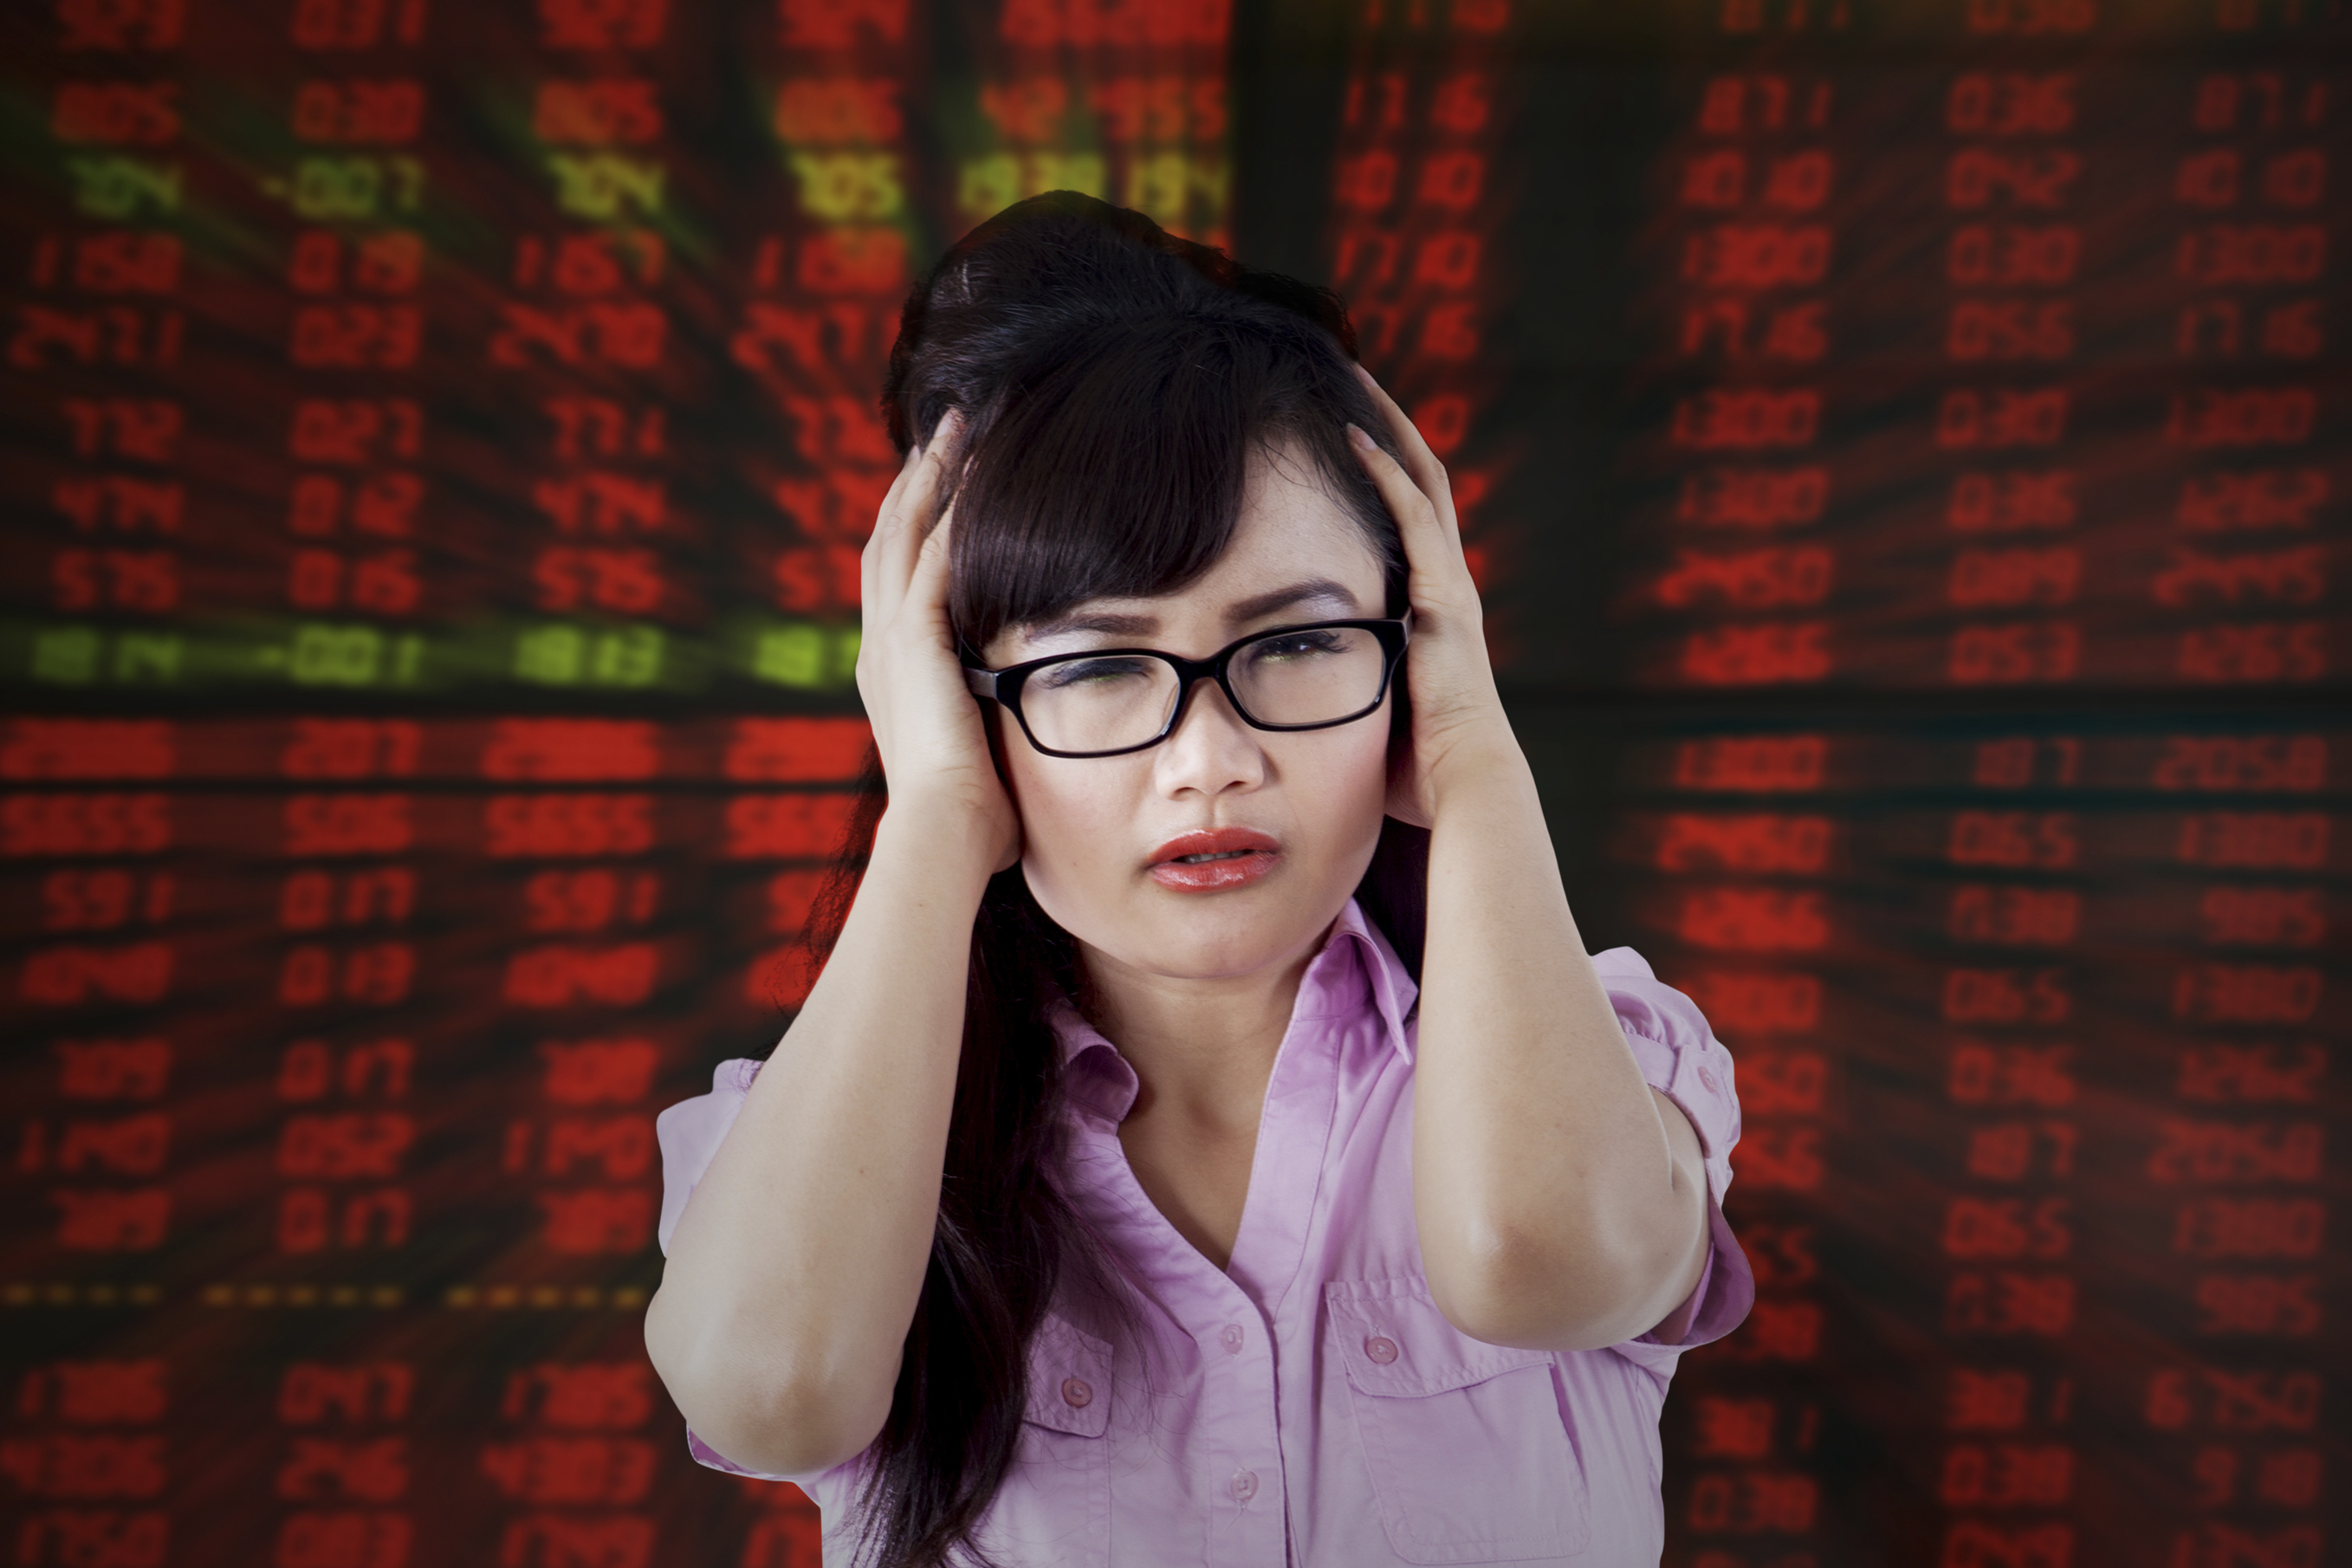 Image of young businesswoman looks stressful with red stock exchange background